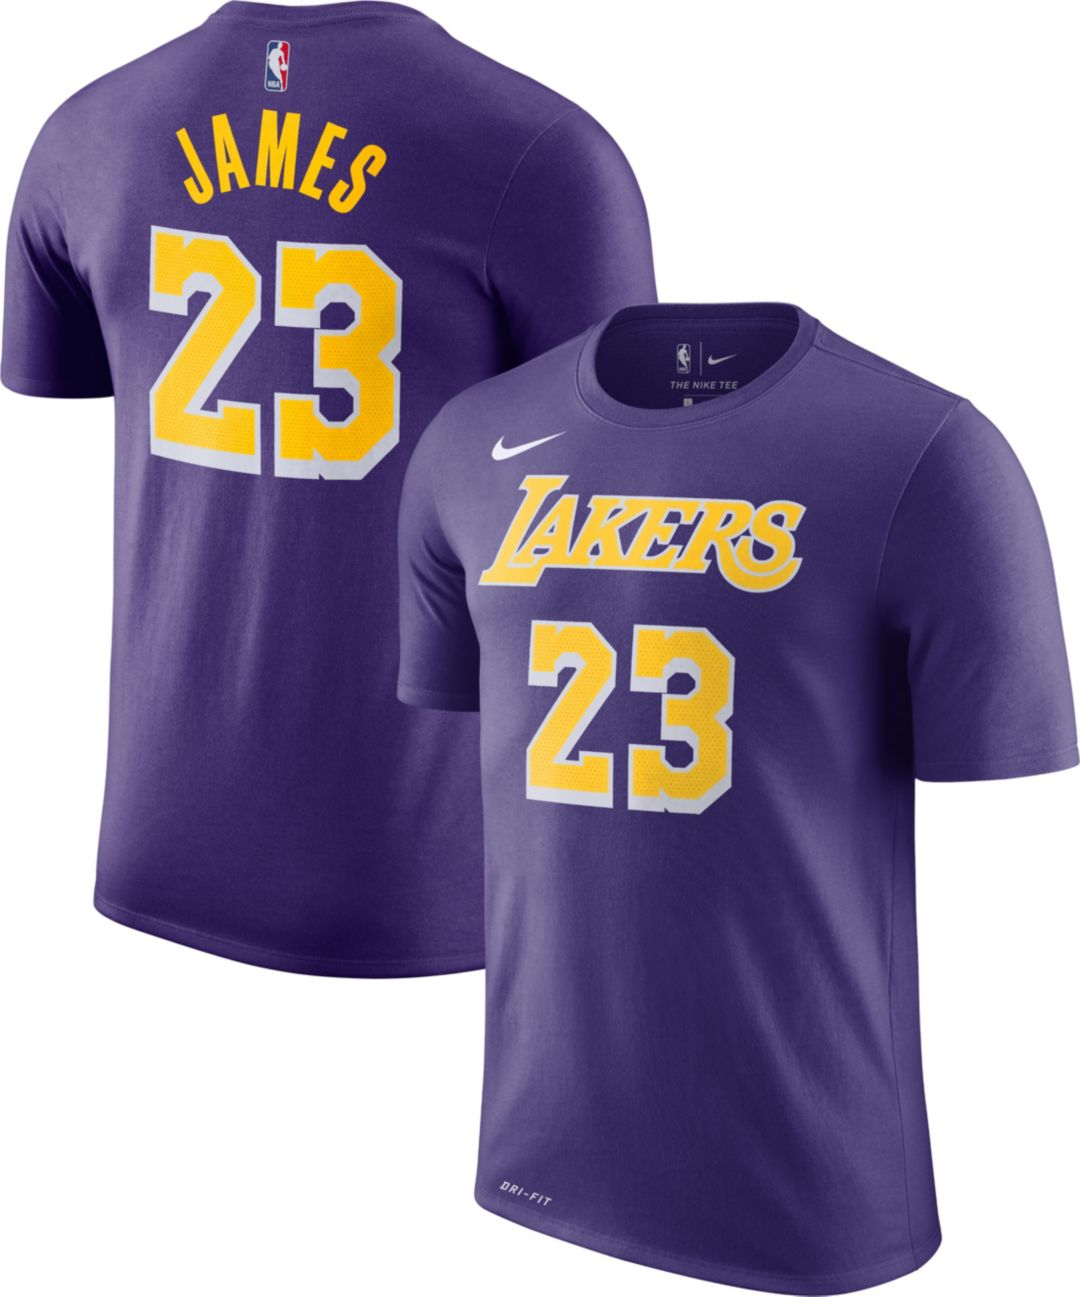 promo code 7f5ea 574ce Nike Youth Los Angeles Lakers LeBron James Dri-FIT Purple T-Shirt